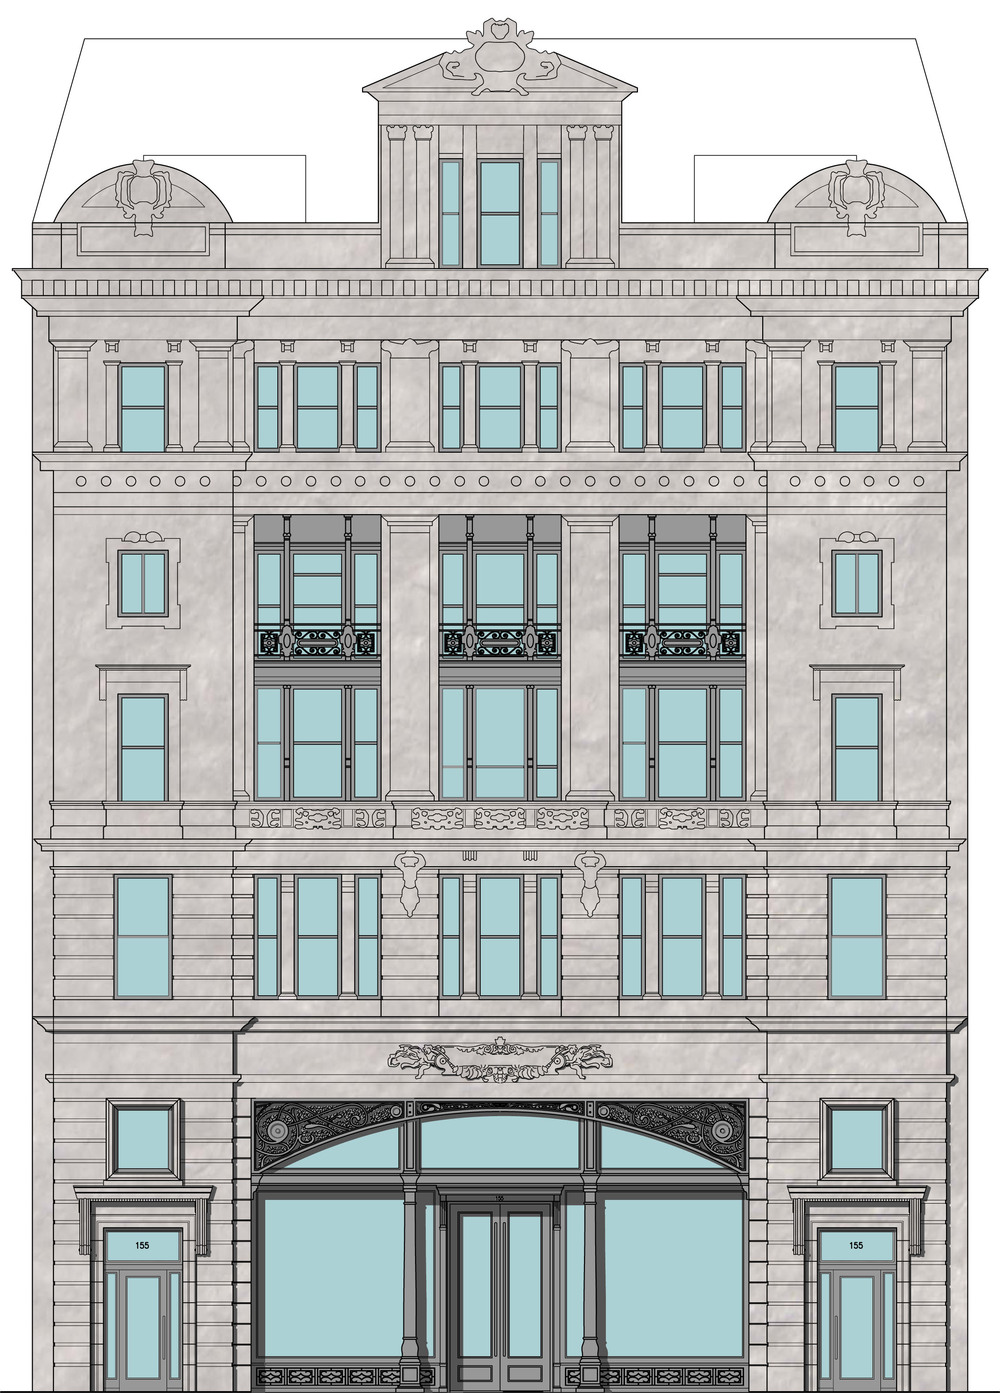 bldg elevation.jpg